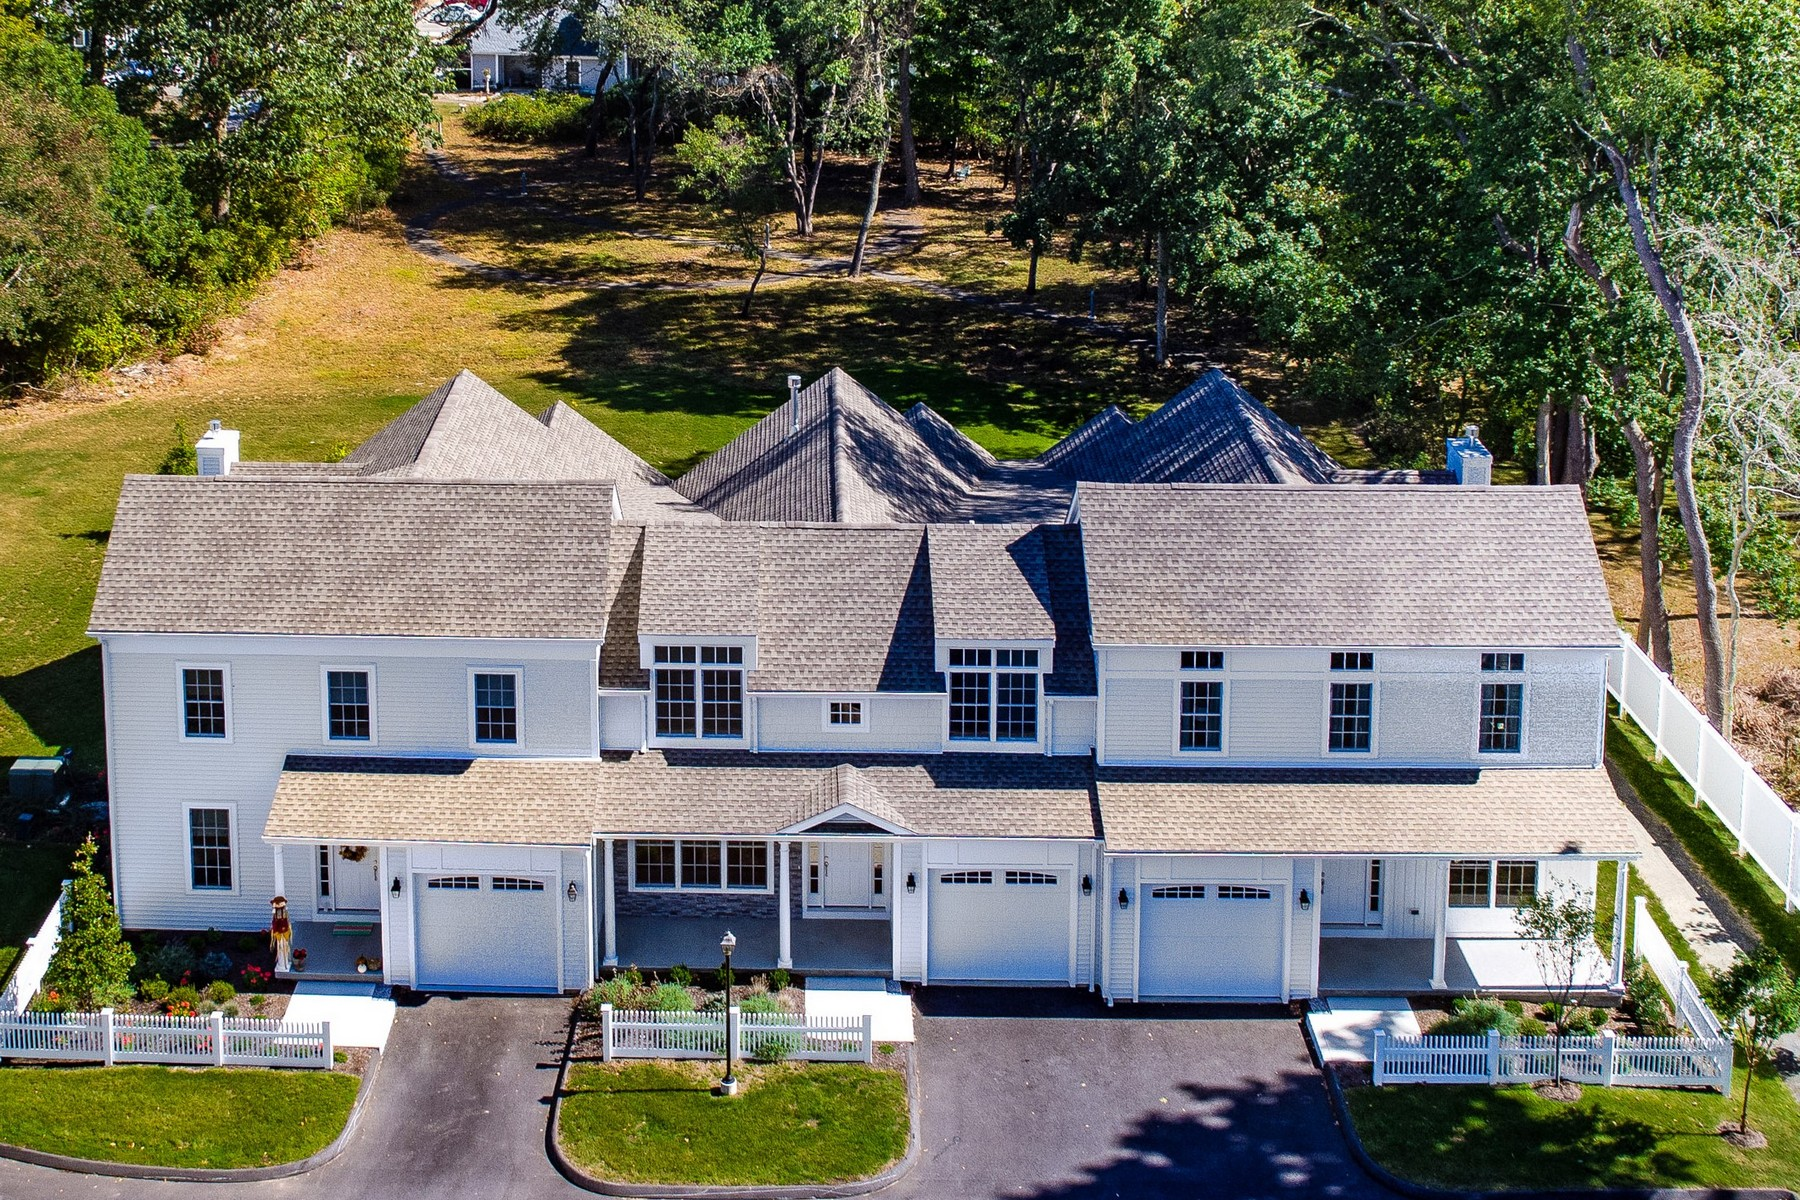 Property for Sale at Luxury Townhouse in the Heart Old Saybrook 25 Sheffield Street 3, Old Saybrook, Connecticut 06475 United States